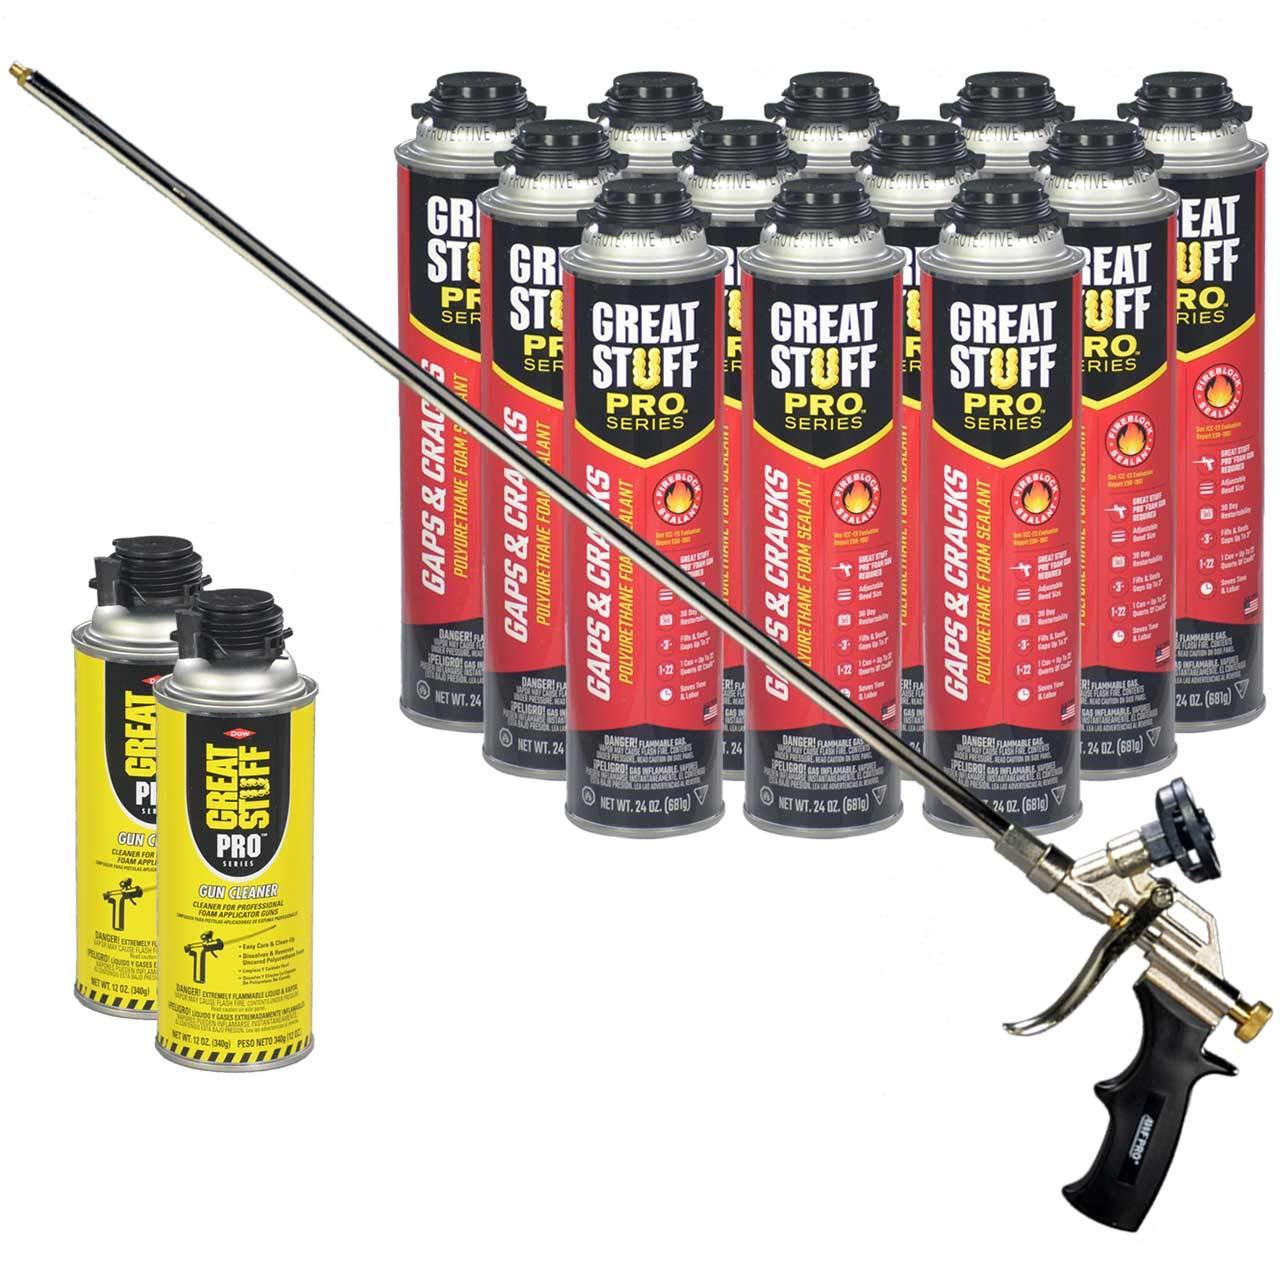 Dow Great Stuff Pro Gaps and Cracks 24 oz Foam (12) with AWF Pro 2 ft Foam Gun (1) Plus Dow Great Stuff Pro Foam Gun Cleaner (2) by Great Stuff